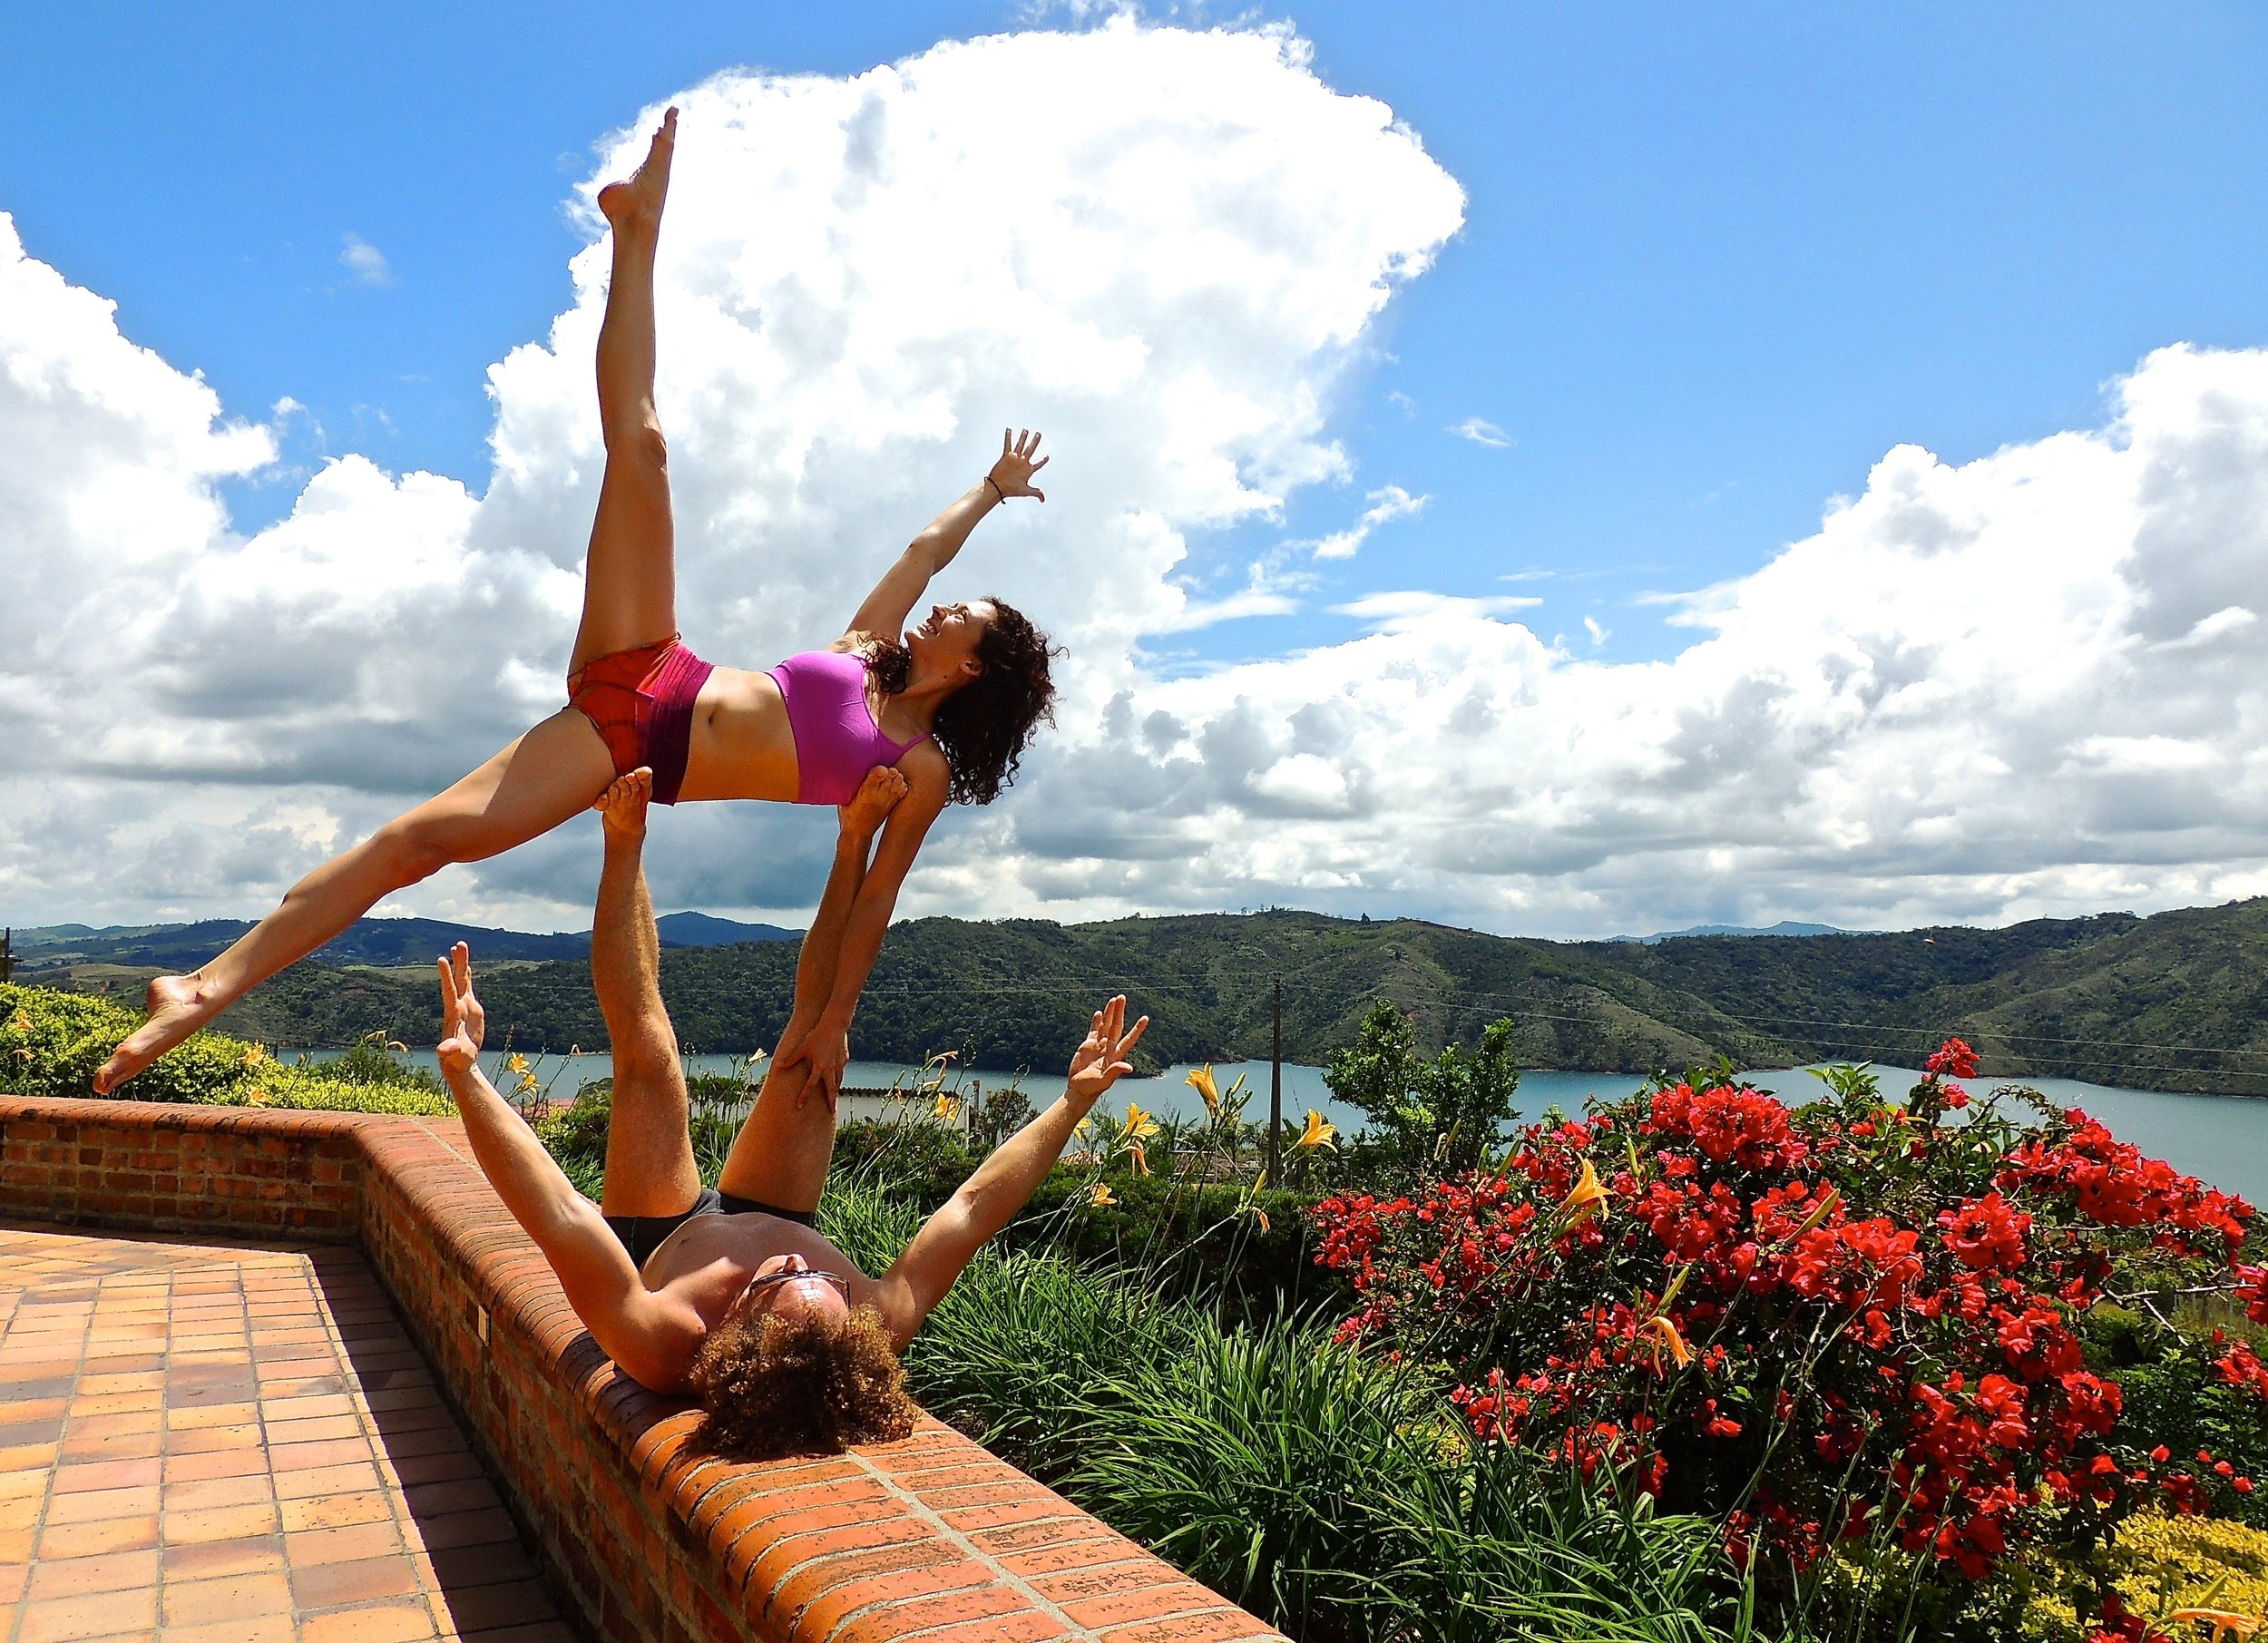 AcroYoga in the Nature 4